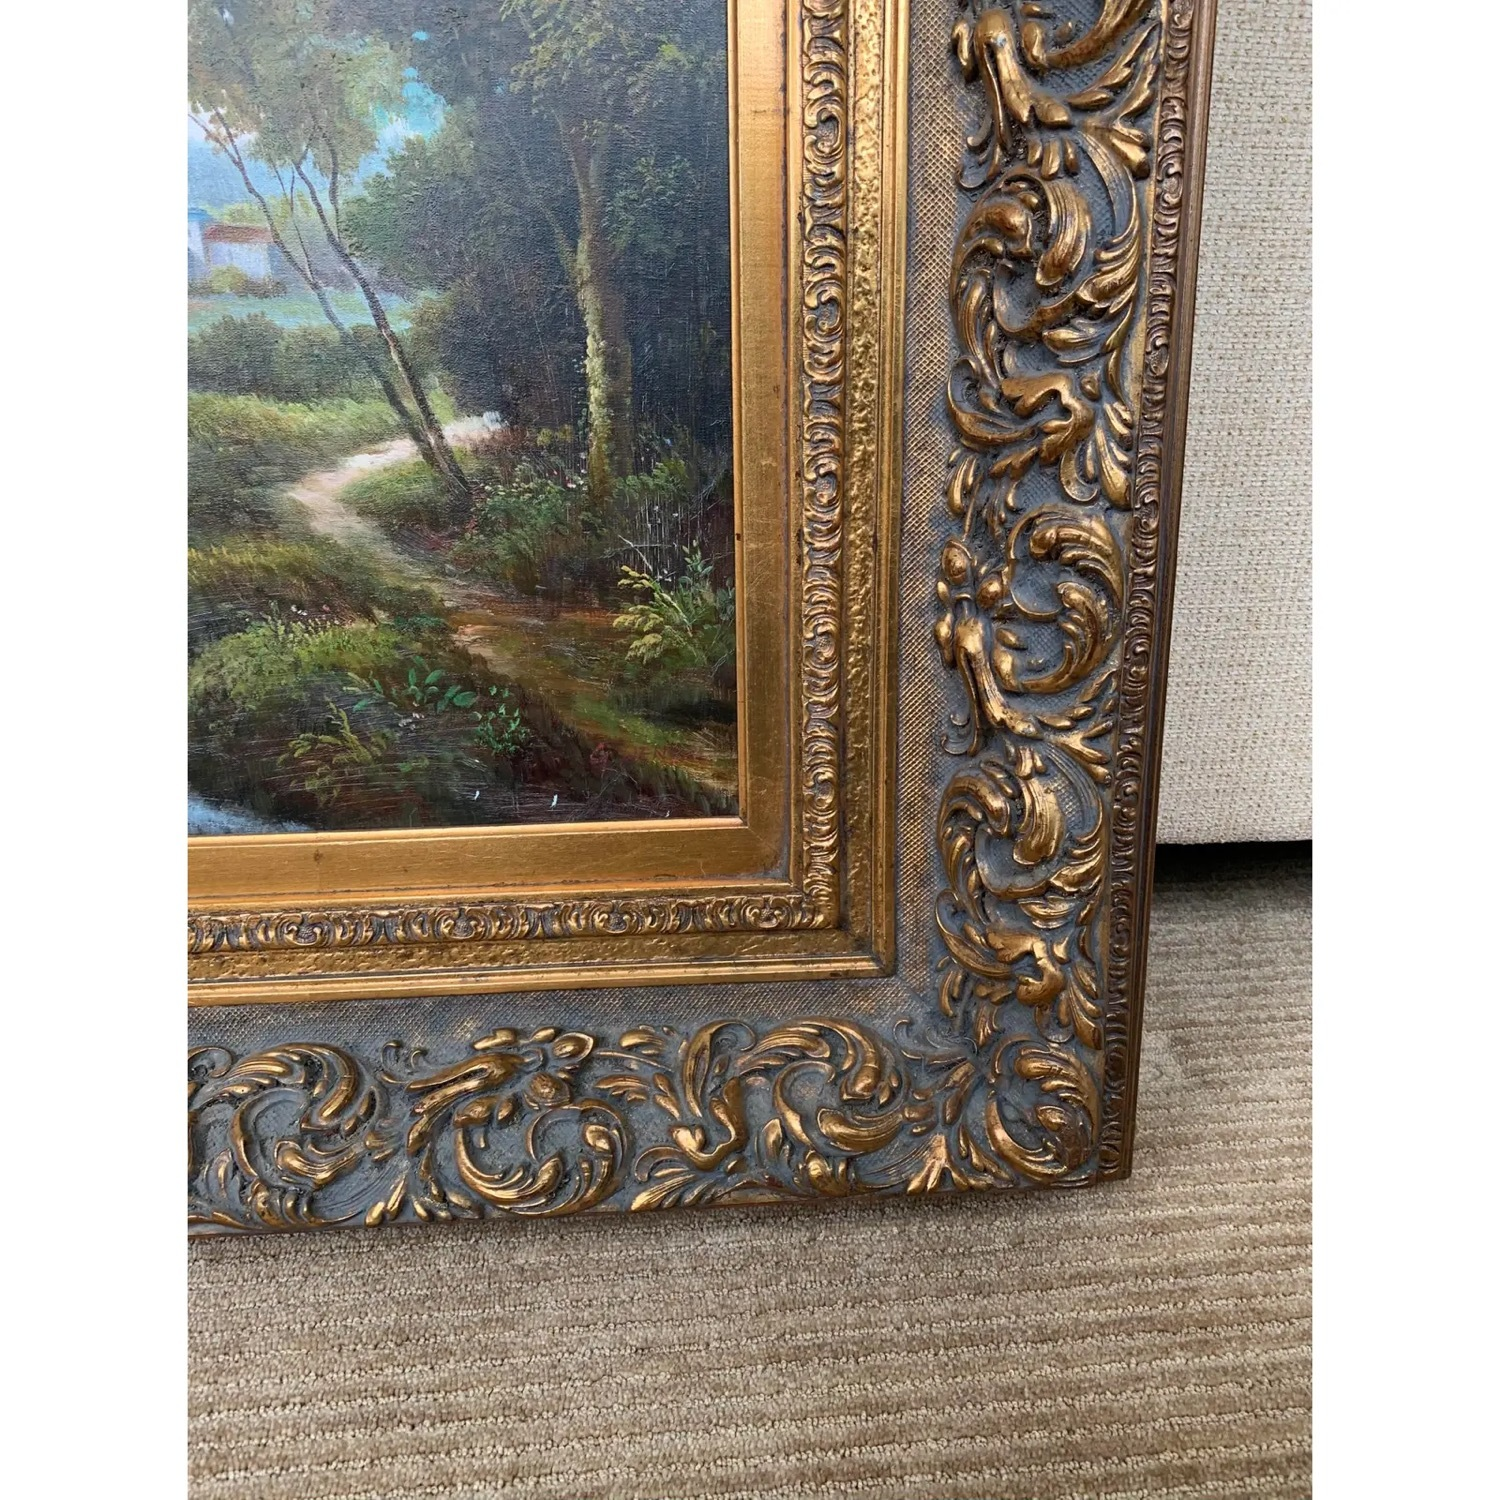 Framed Early 20th Century Oil Painting - G.Henson - image-3